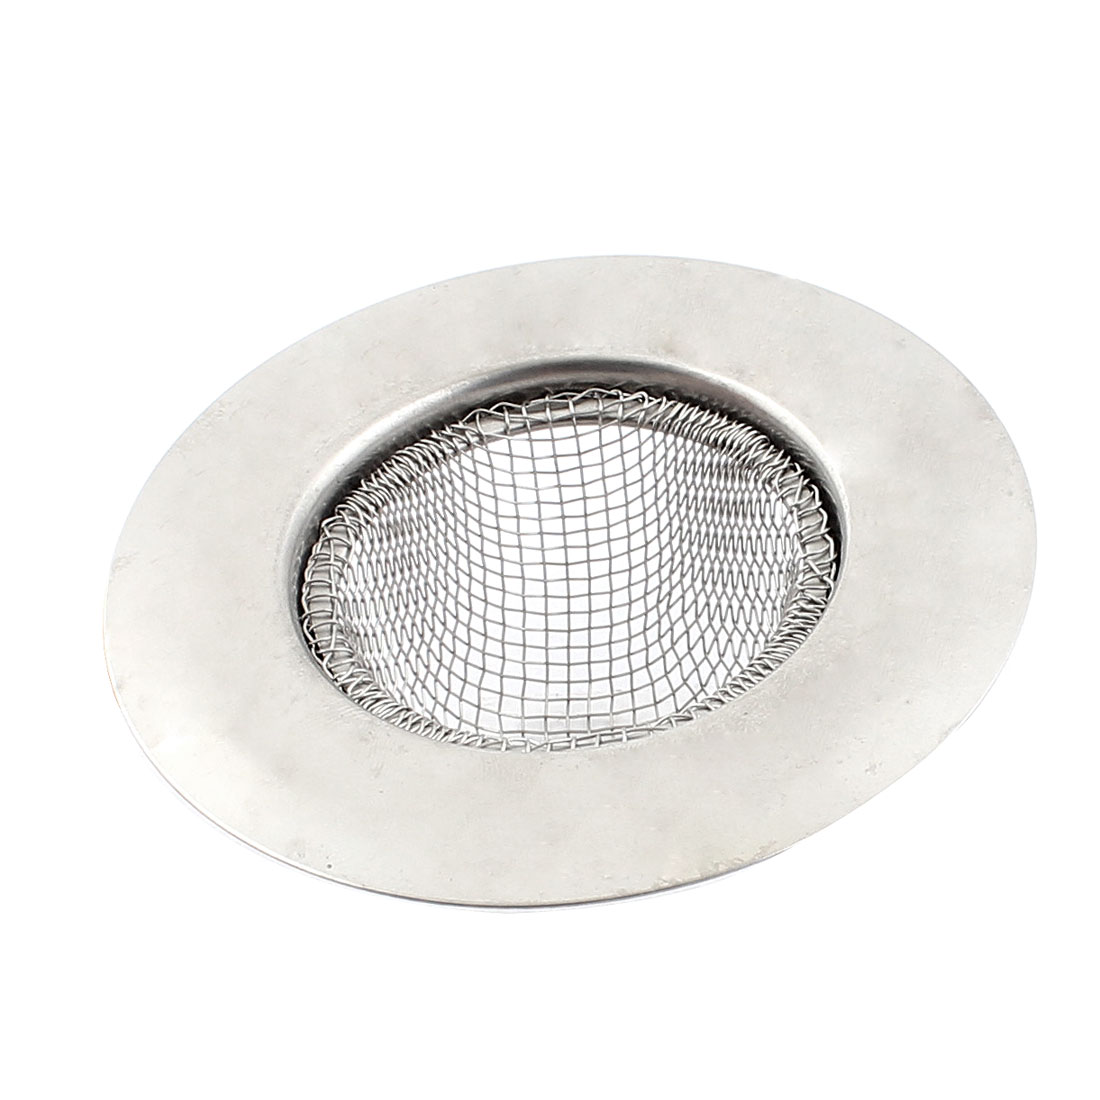 7cm Dia Home Kitchen Water Sink Bath Basin Waste Filter Strainer Silver Tone